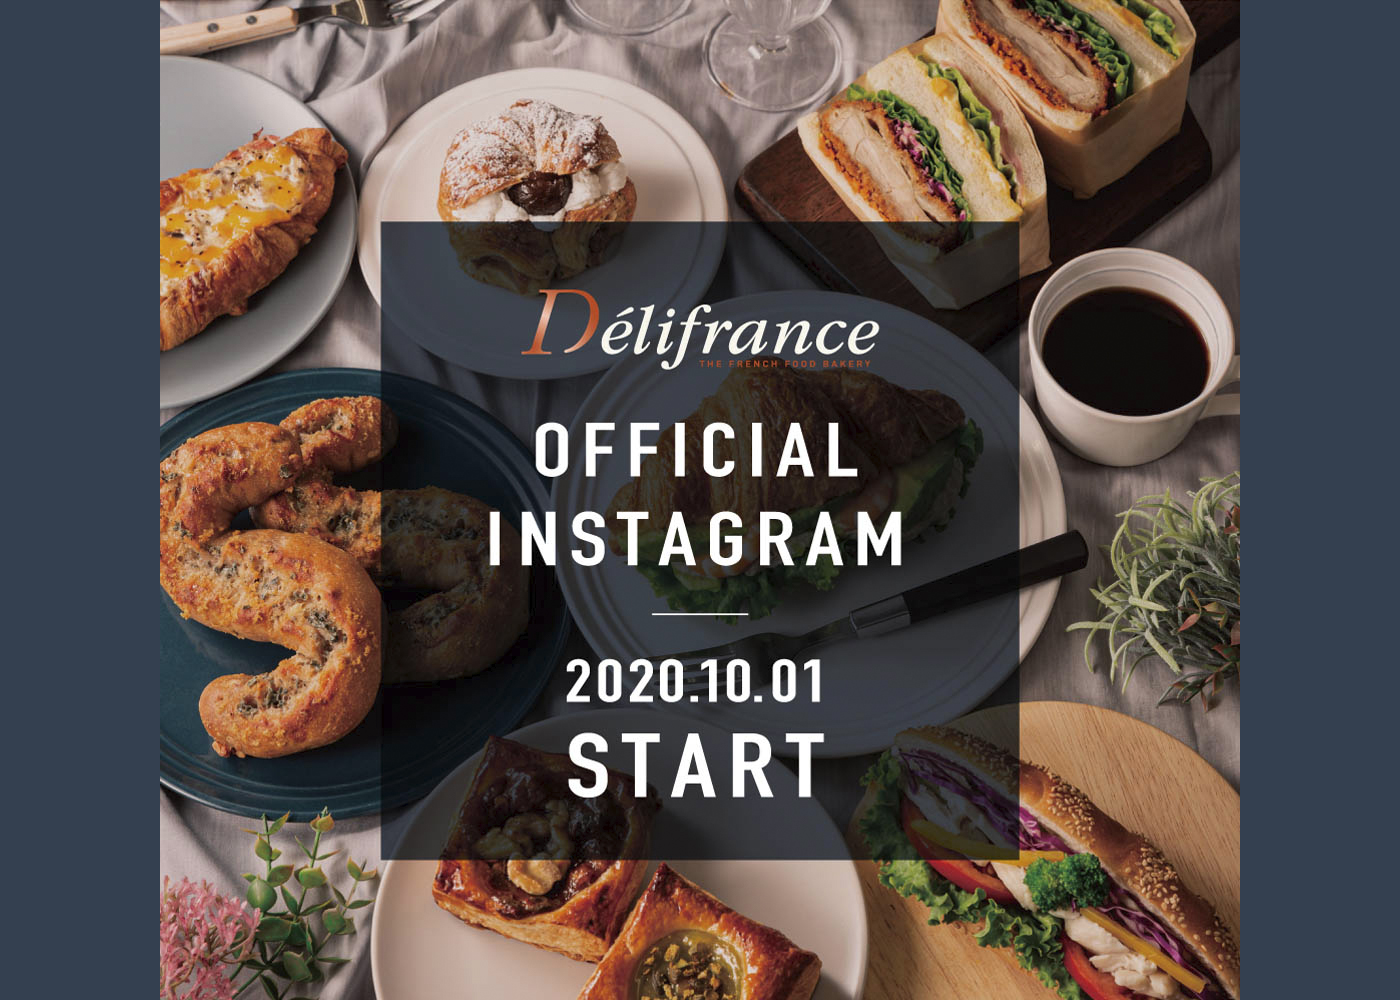 《Delifrance Official Instagram》のお知らせ